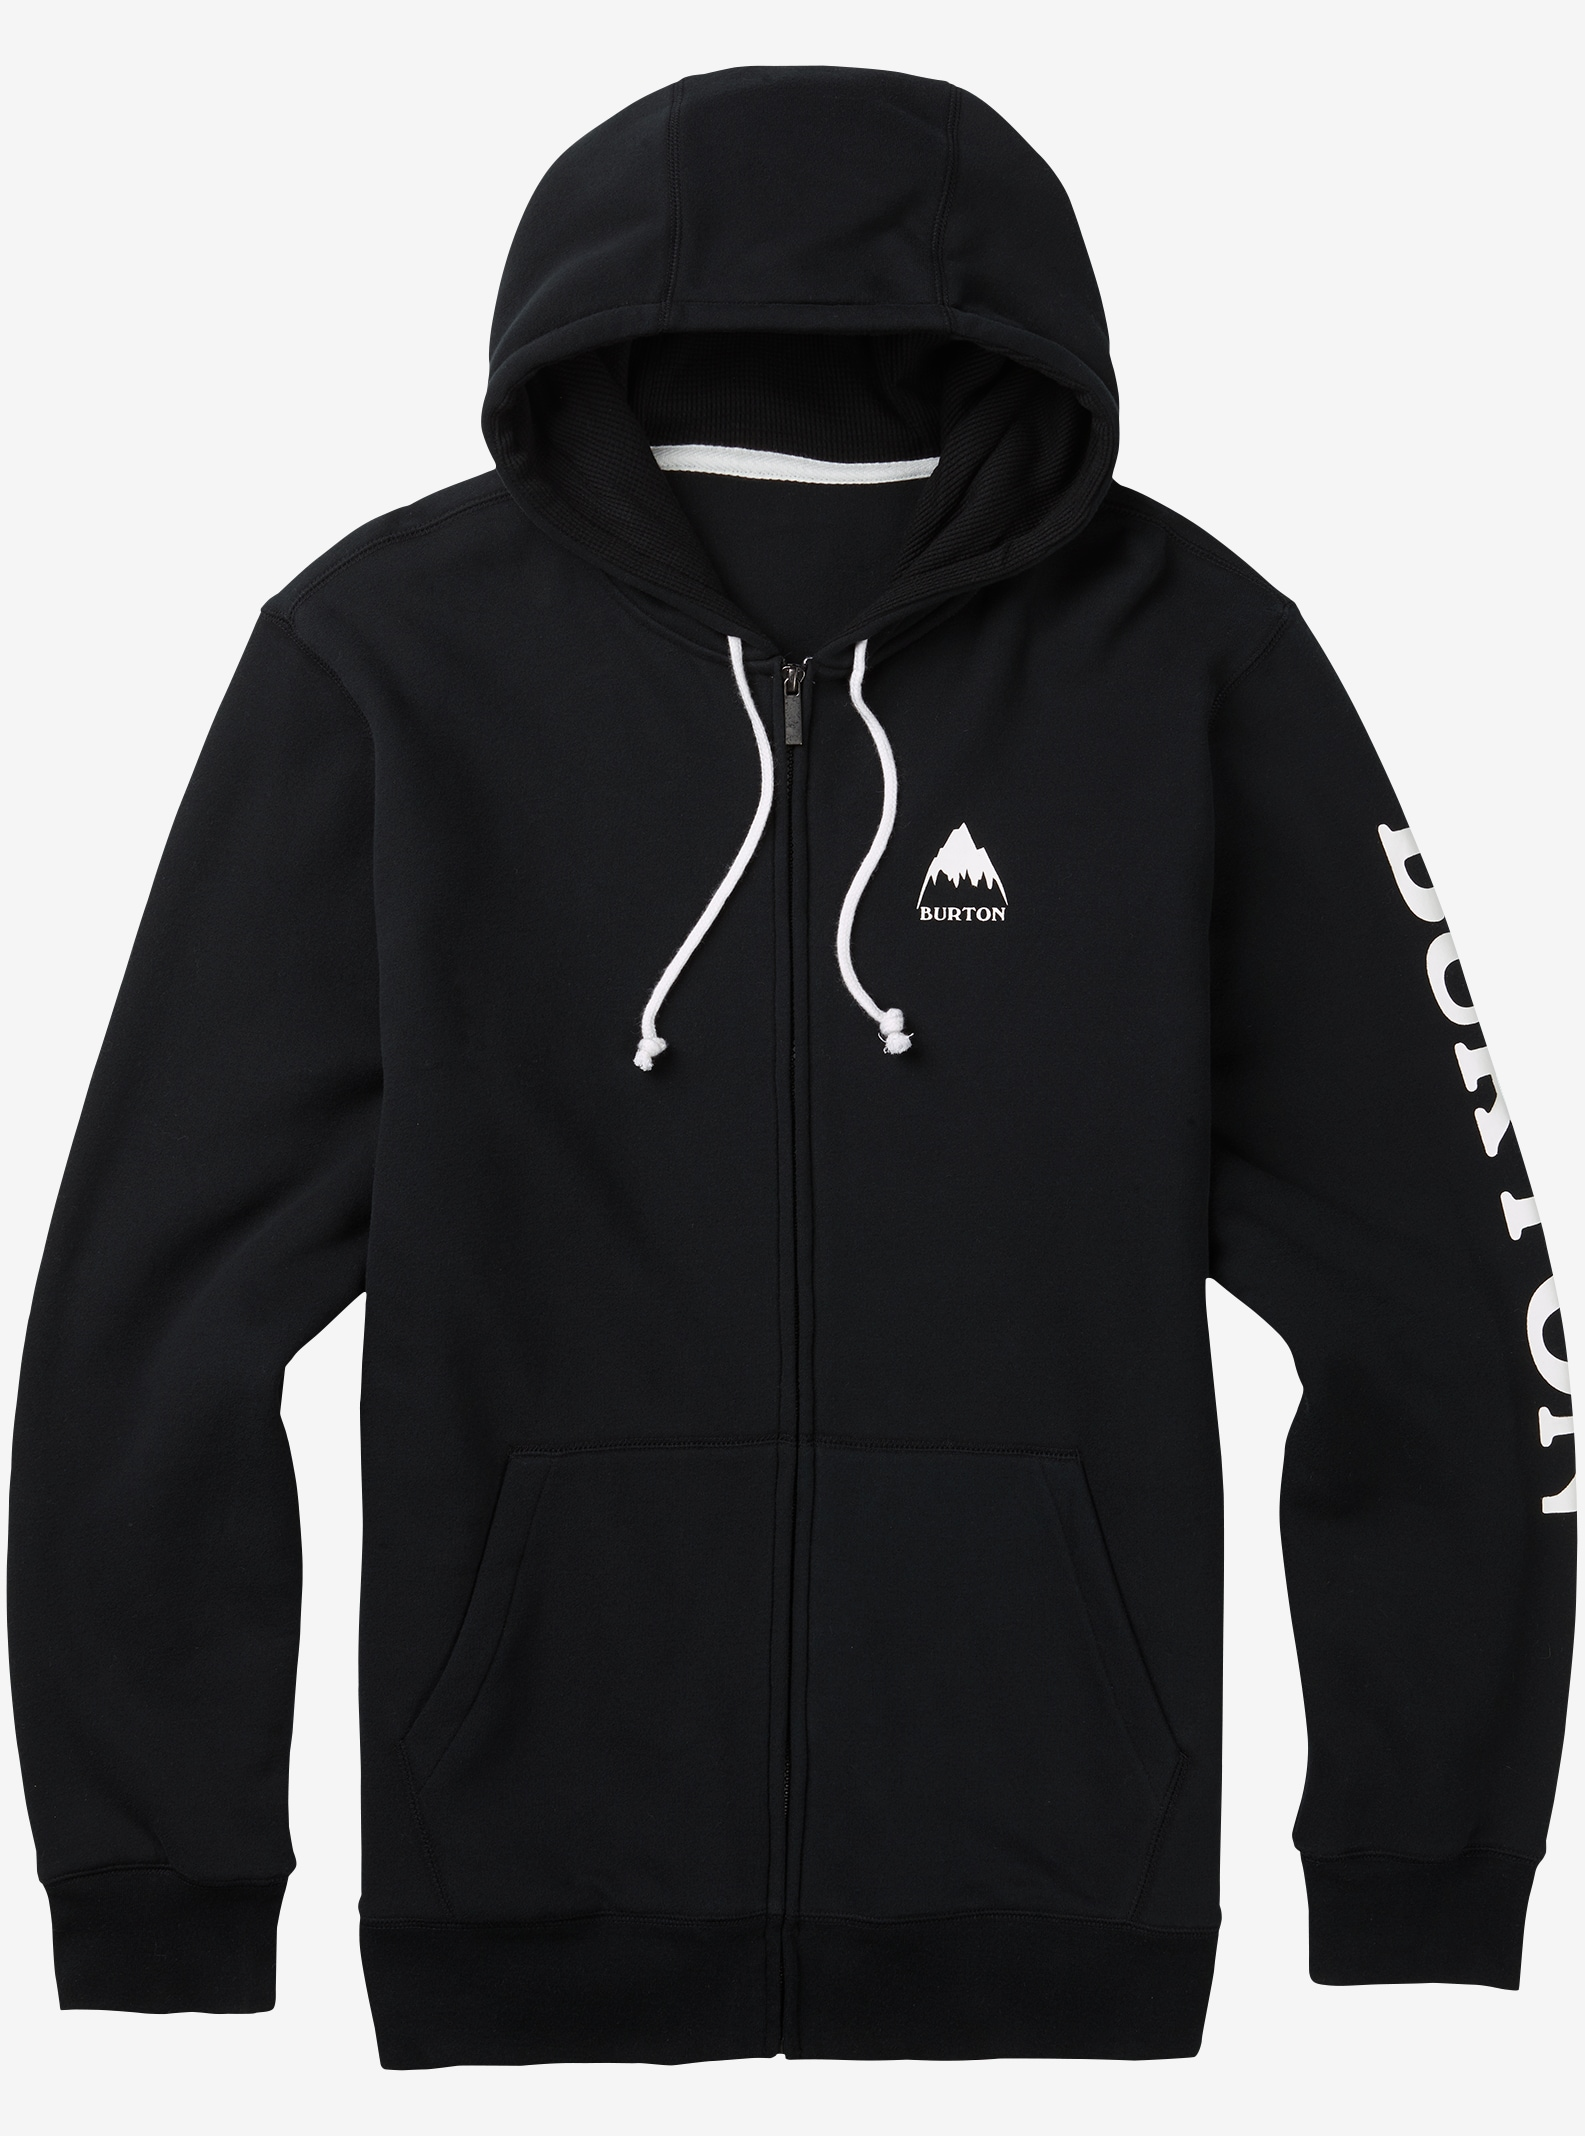 Men's Burton Elite Full-Zip Hoodie shown in True Black